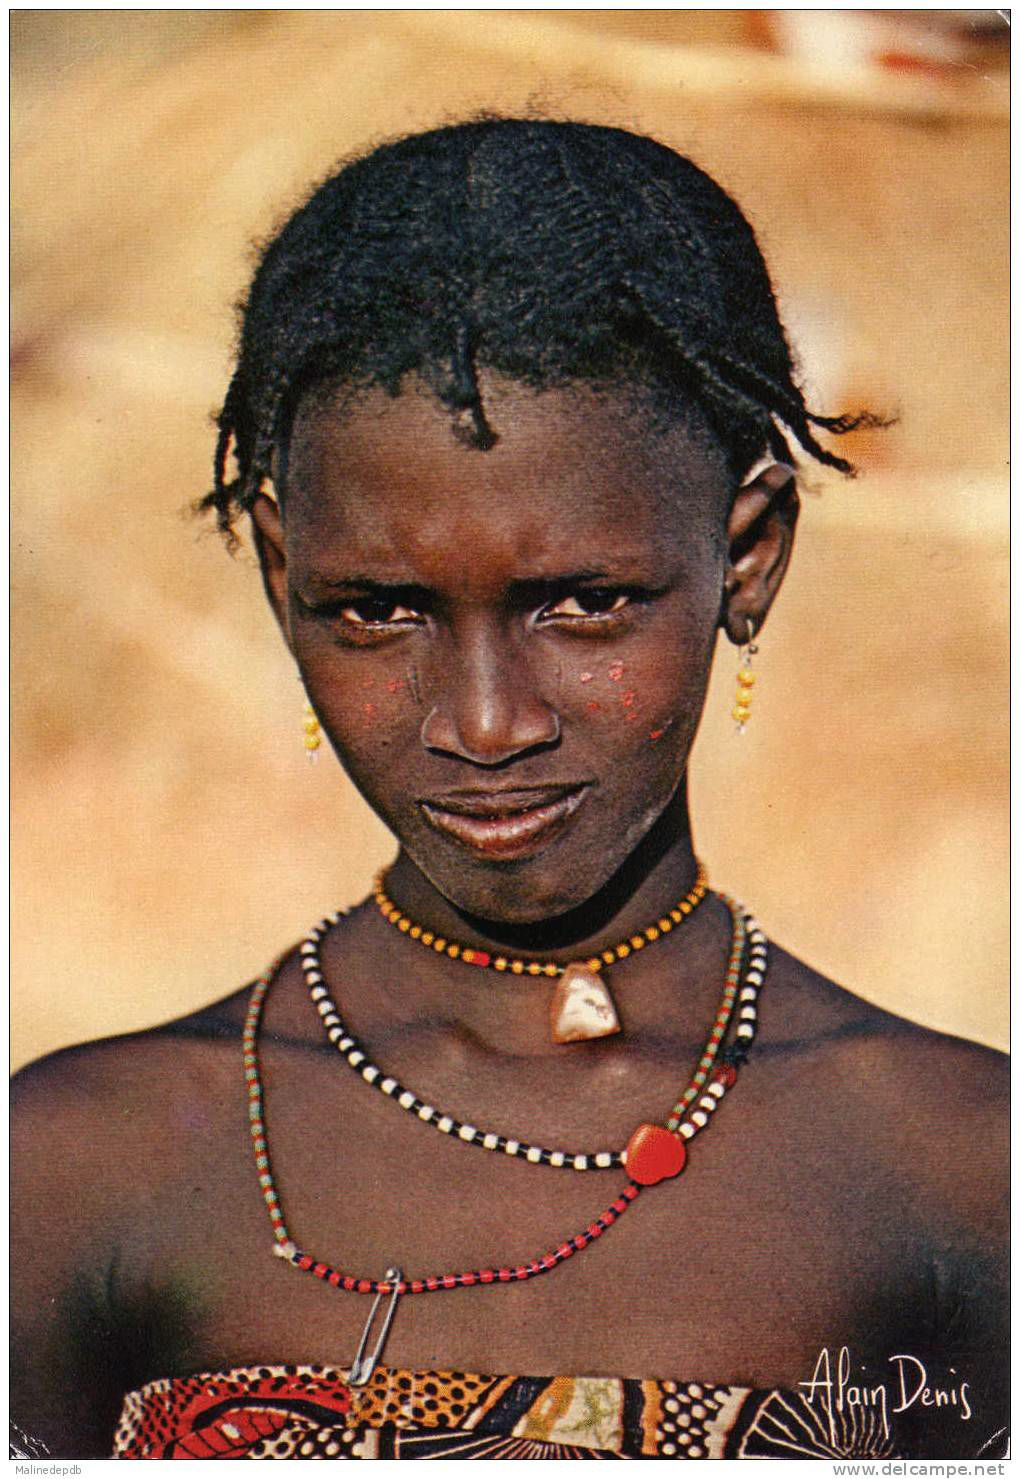 Africa   Bororo girl from the Garoua region of northern Cameroon    Scanned postcard, photo by Alain Denis